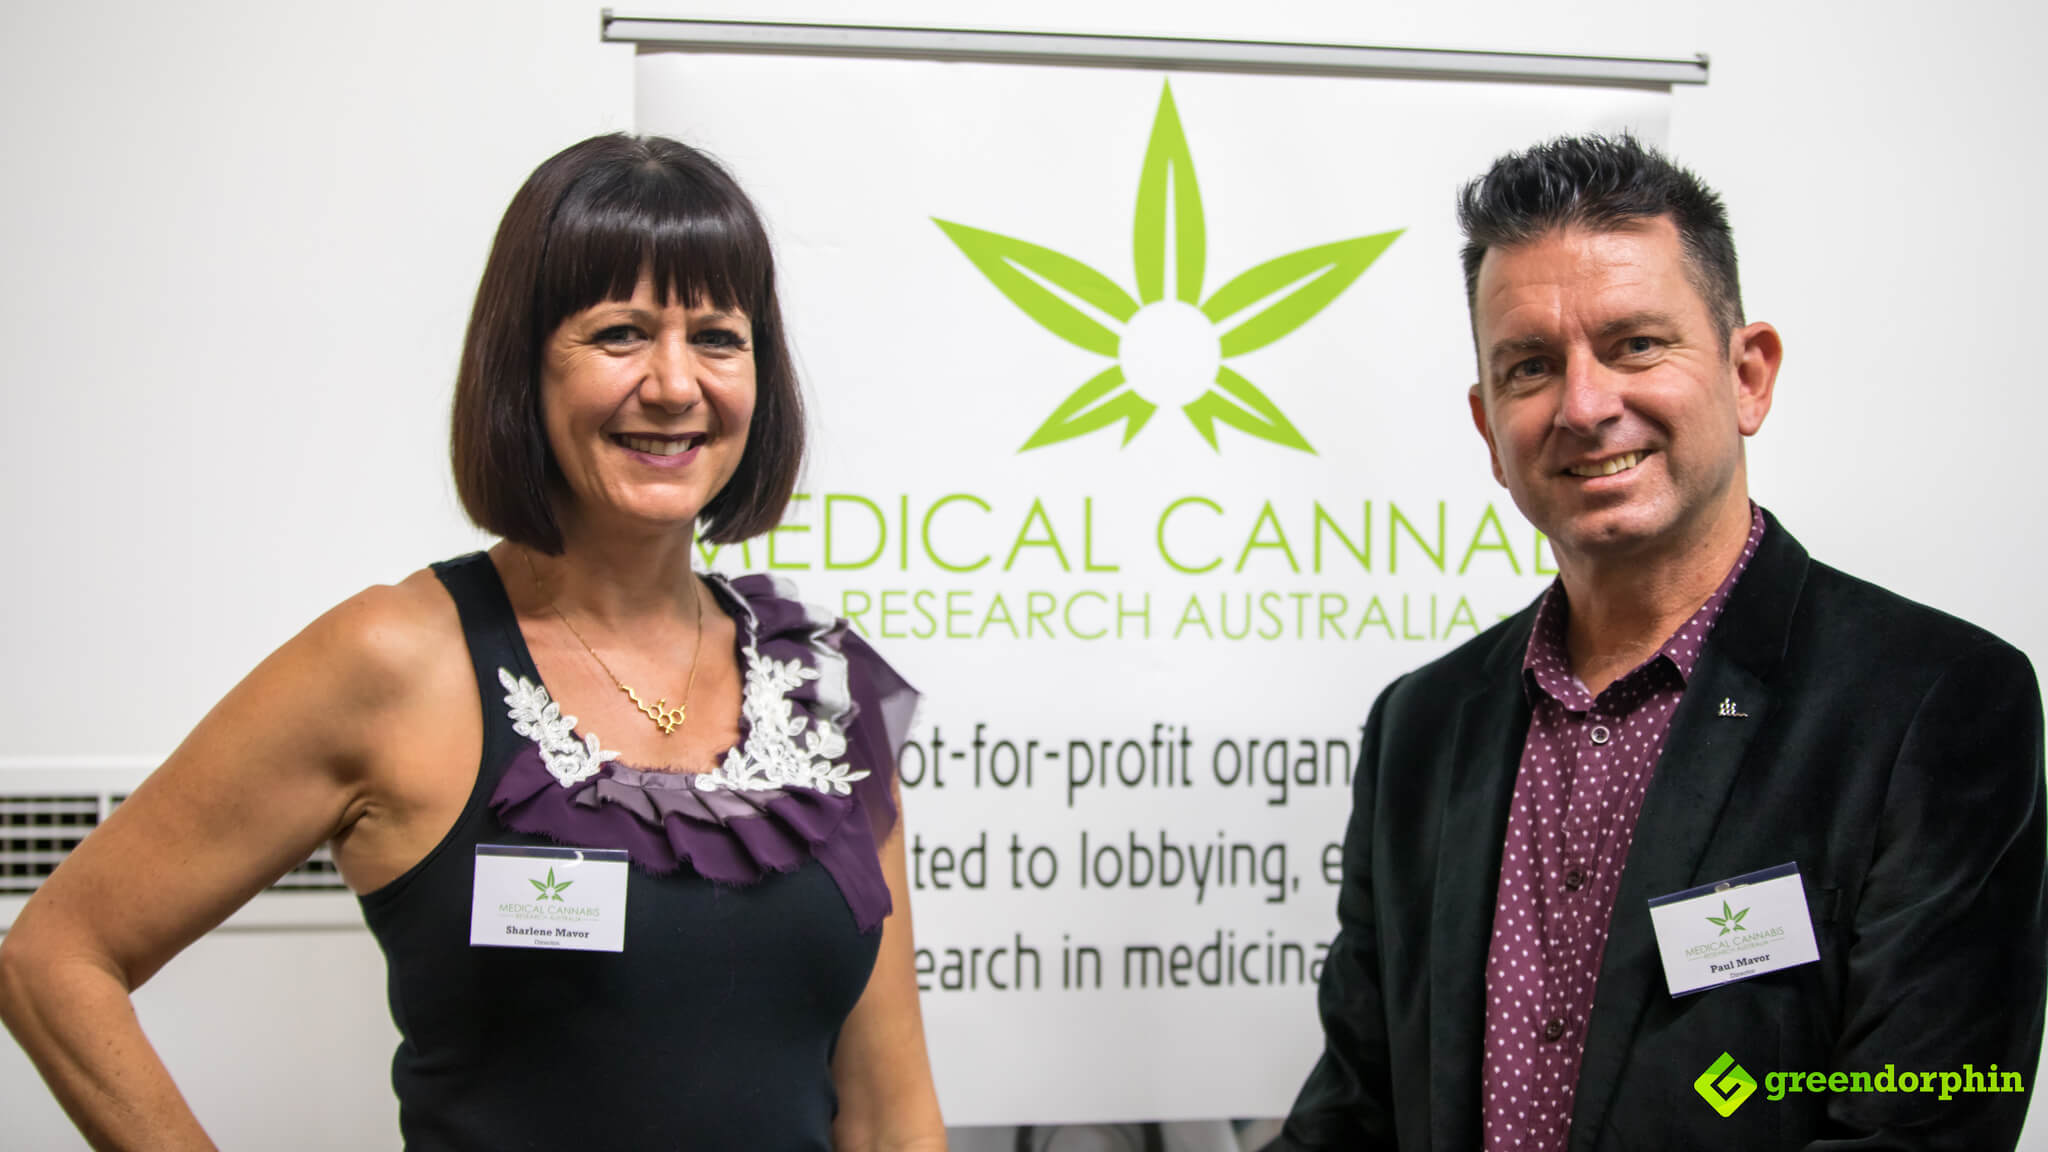 Sharlene is a Medical Scientist (BAppSc -Medical Laboratory Science) and co-founder/director of Medical Cannabis Research Australia